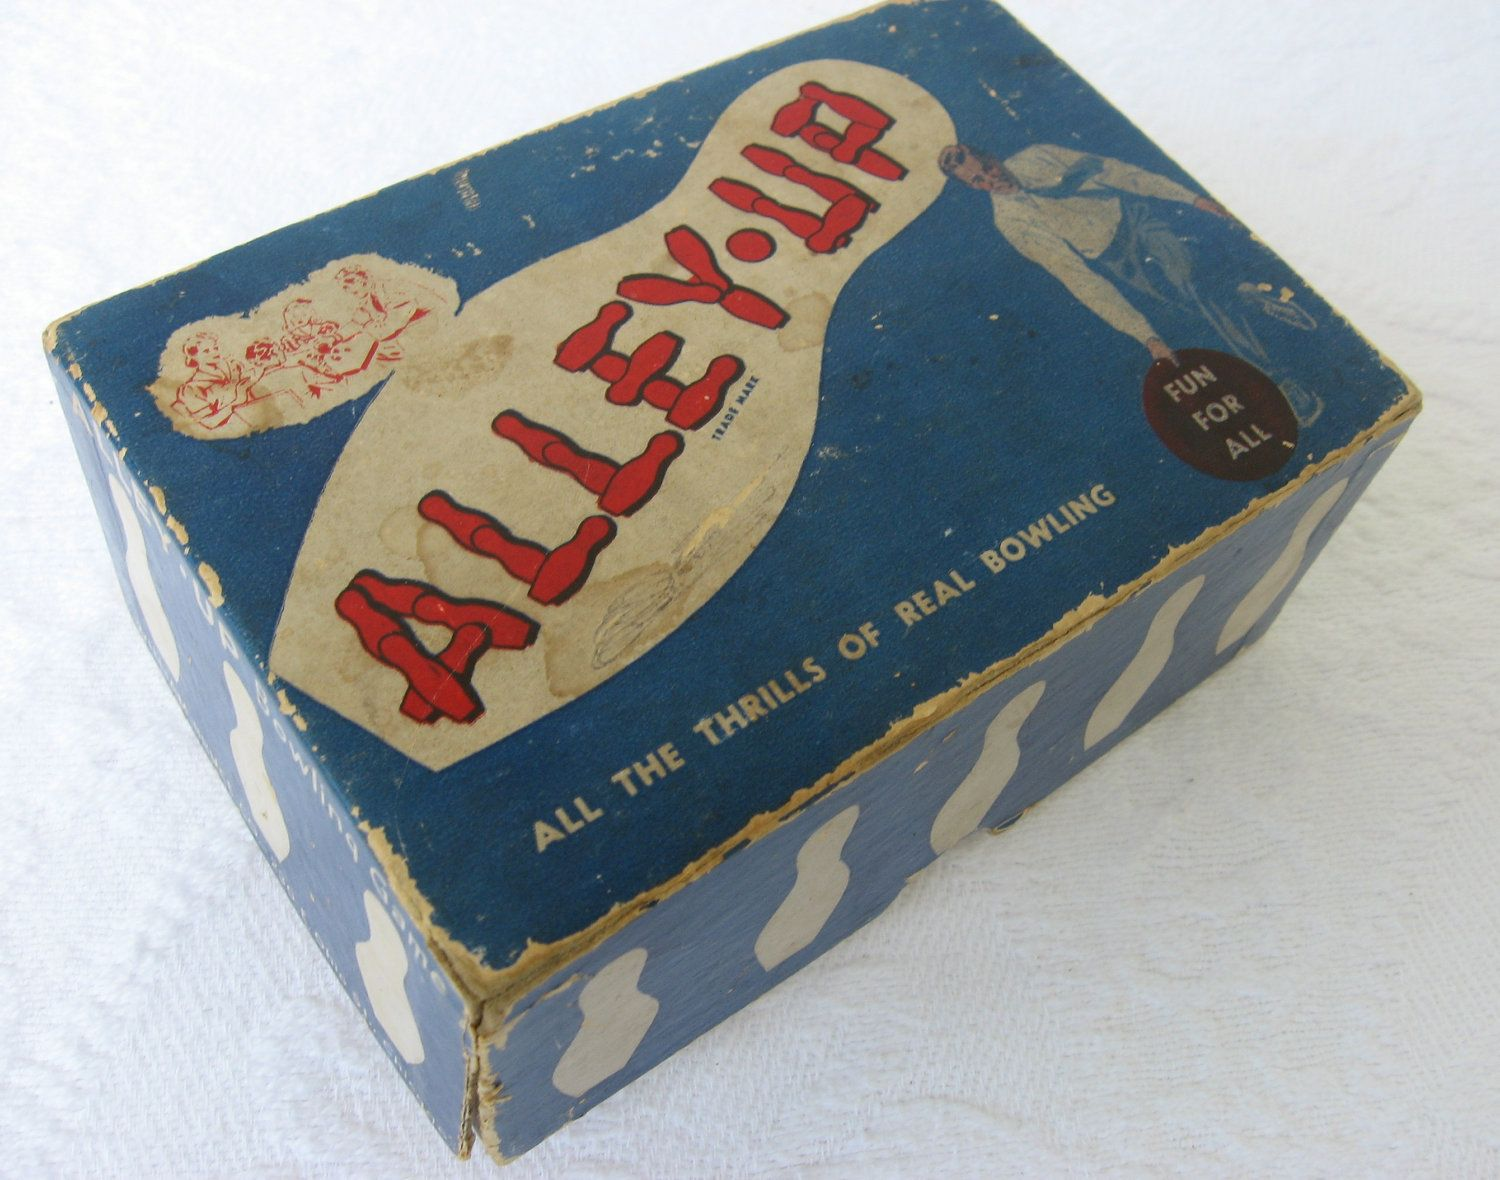 Vintage Alley Up Bowling Game Bowling, Bowling games